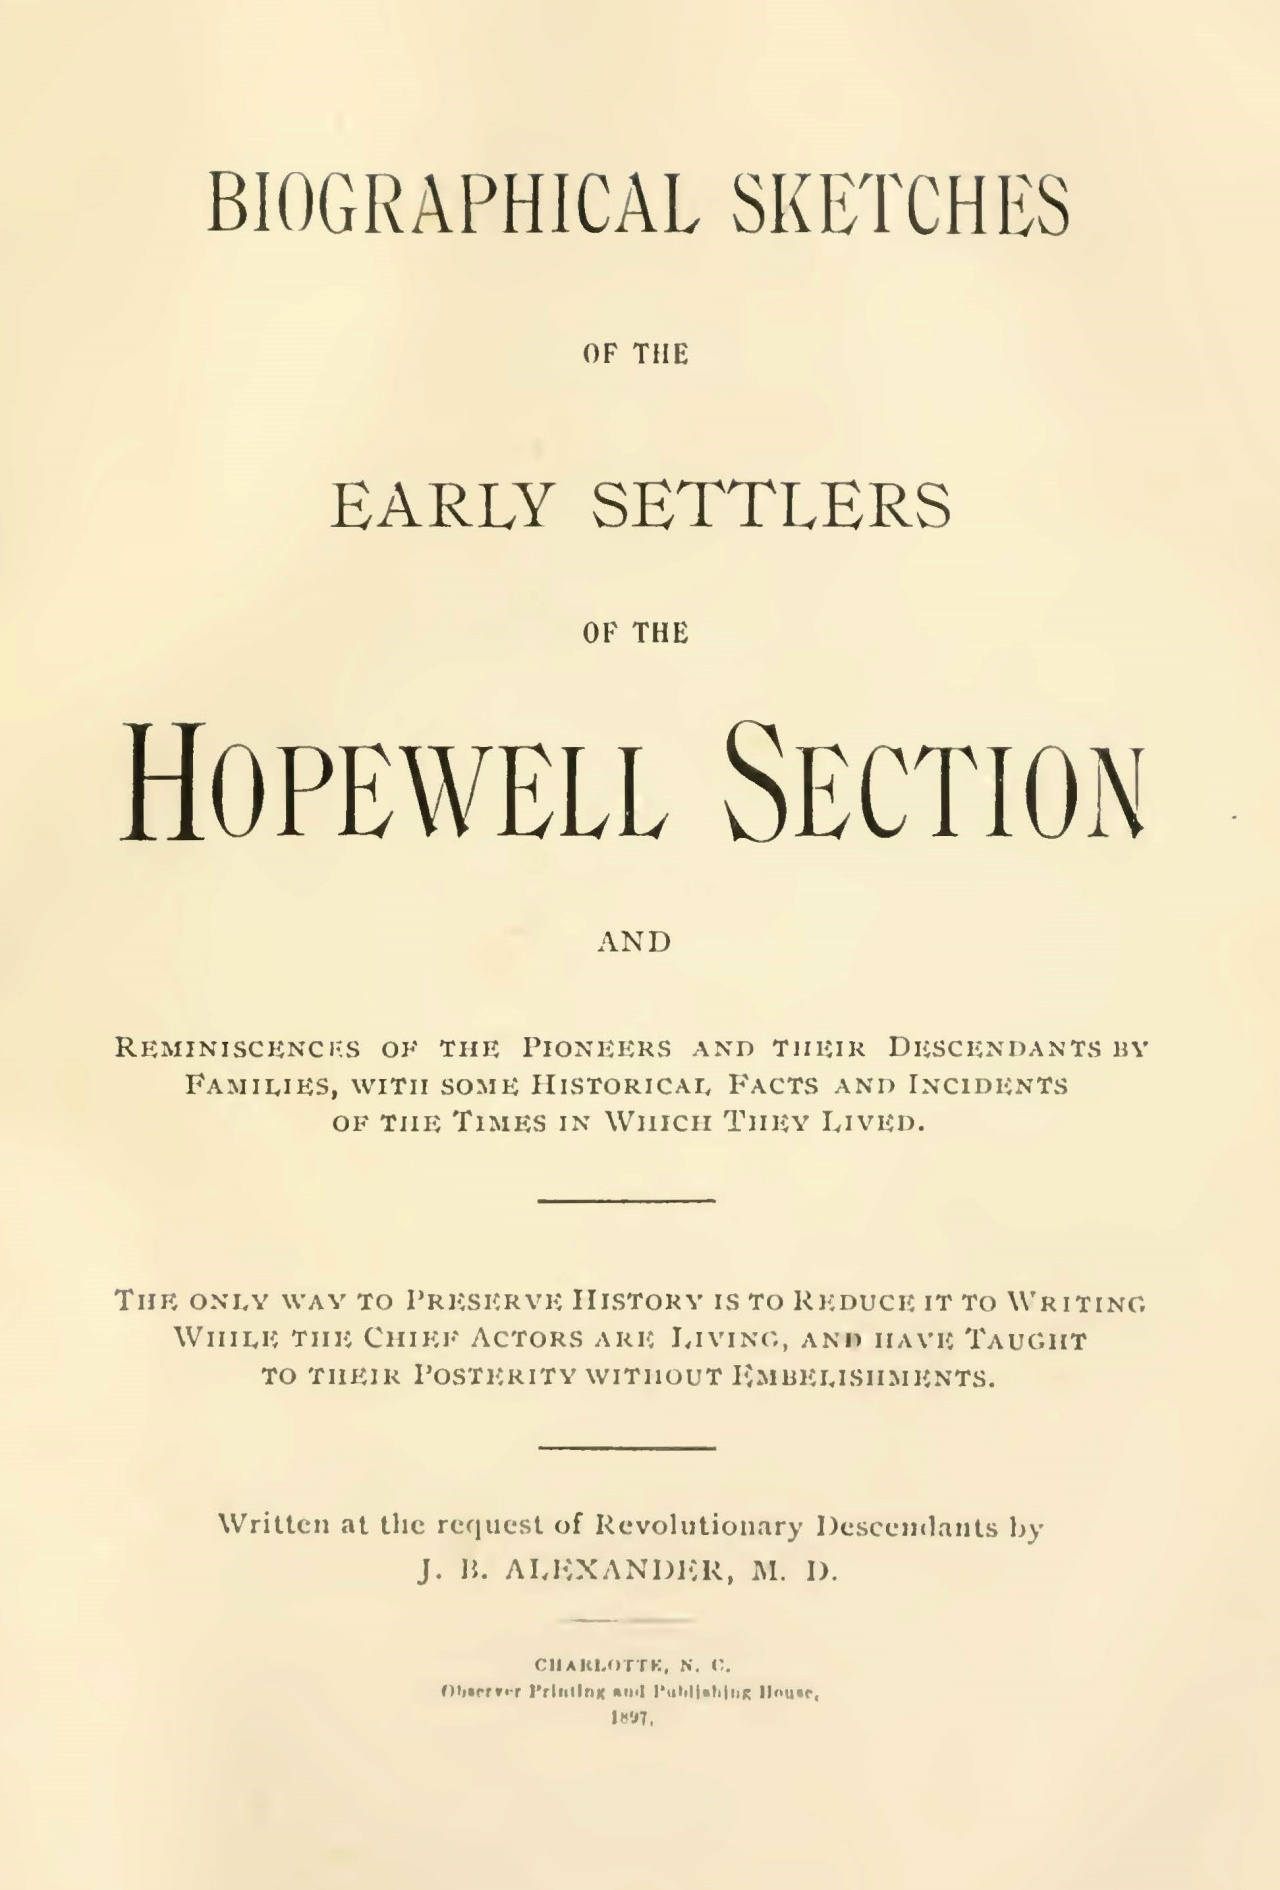 Alexander, Sr., John Brevard, Biographical Sketches of the Early Settlers of the Hopewell Section Title Page.jpg